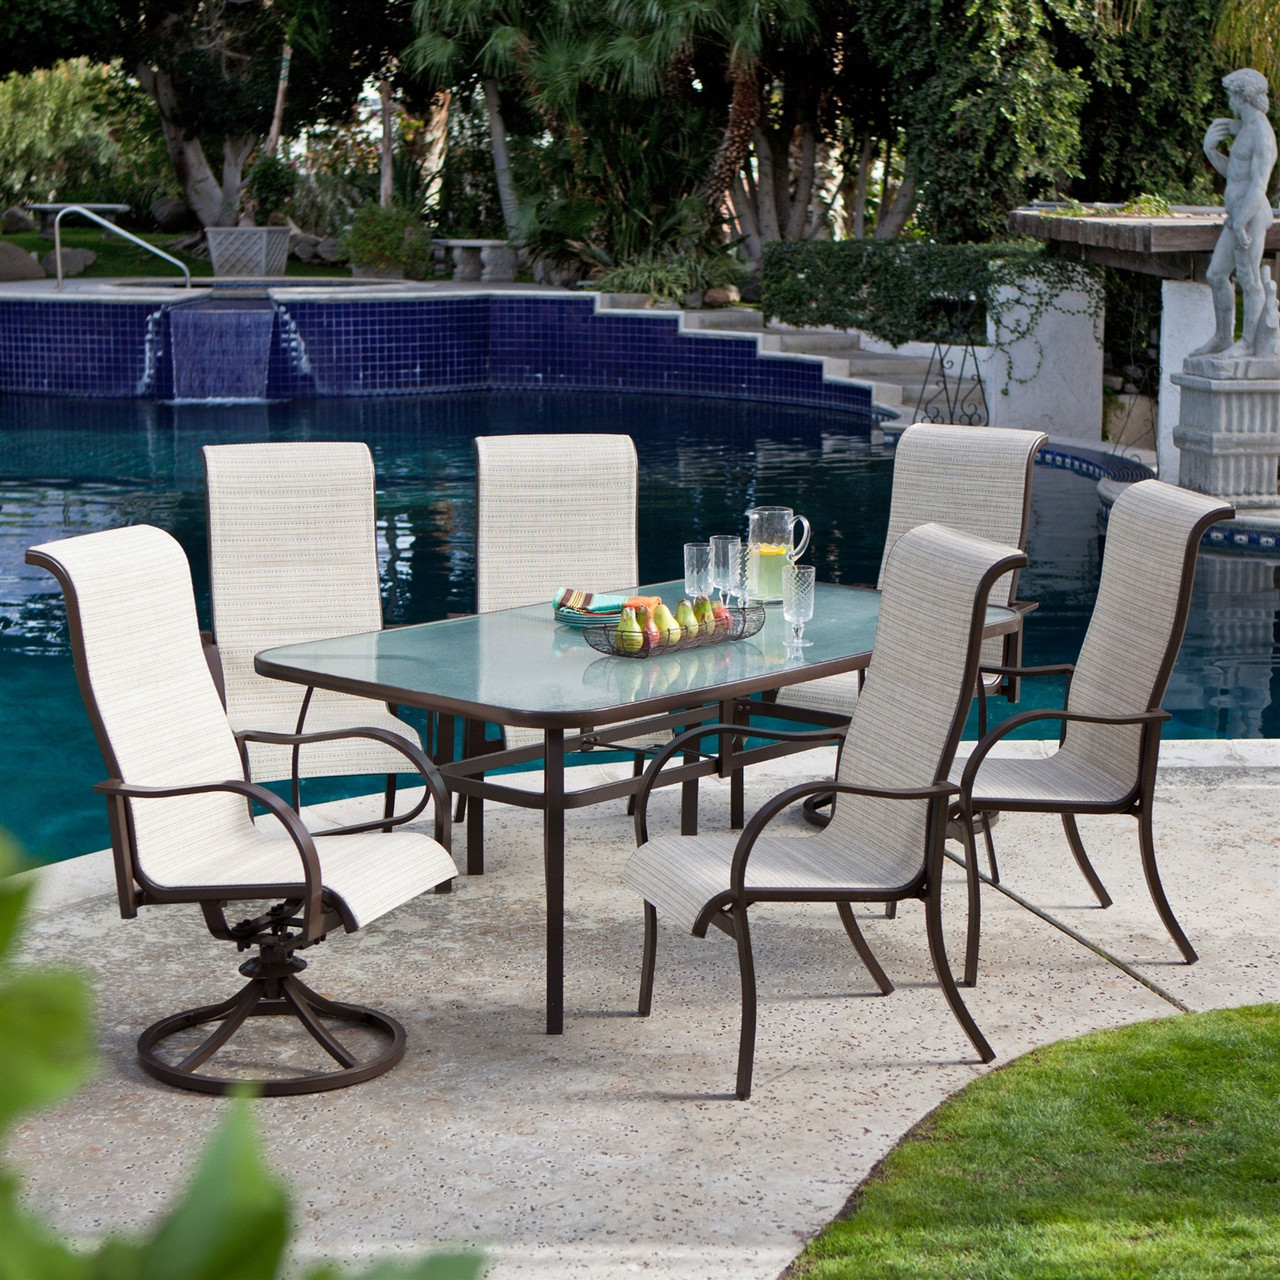 Patio Tables Dining: 72 X 42-inch Rectangle Patio Dining Table, Glass Top